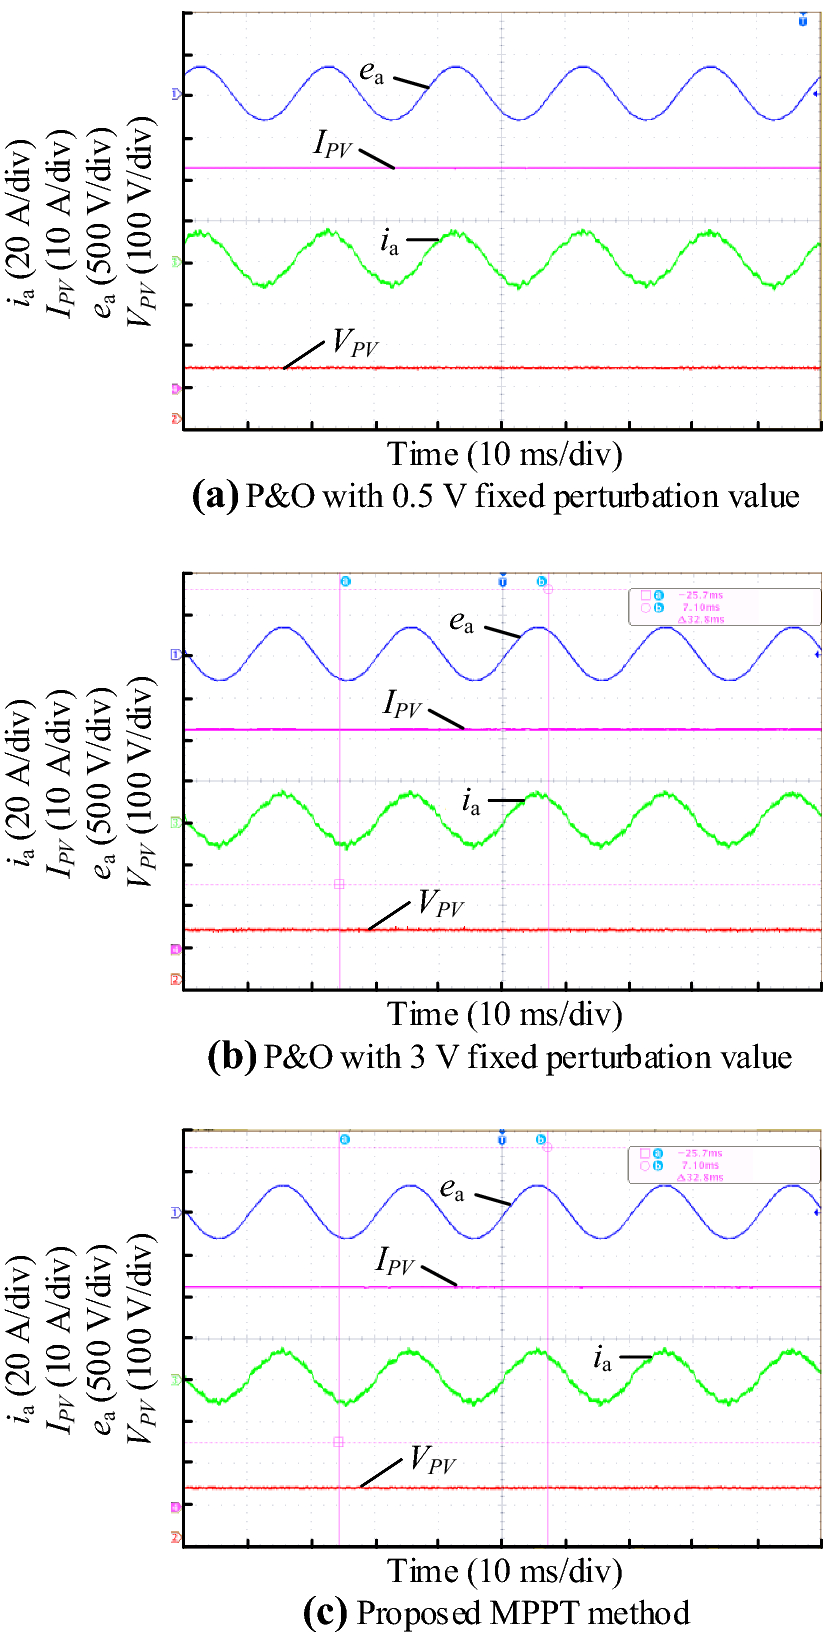 Adaptive Perturb And Observe Maximum Power Point Tracking With Programmable Controller For Photovoltaic Open Image In New Window Fig 8 Steady State Experimental Results Using Different Mppt Methods